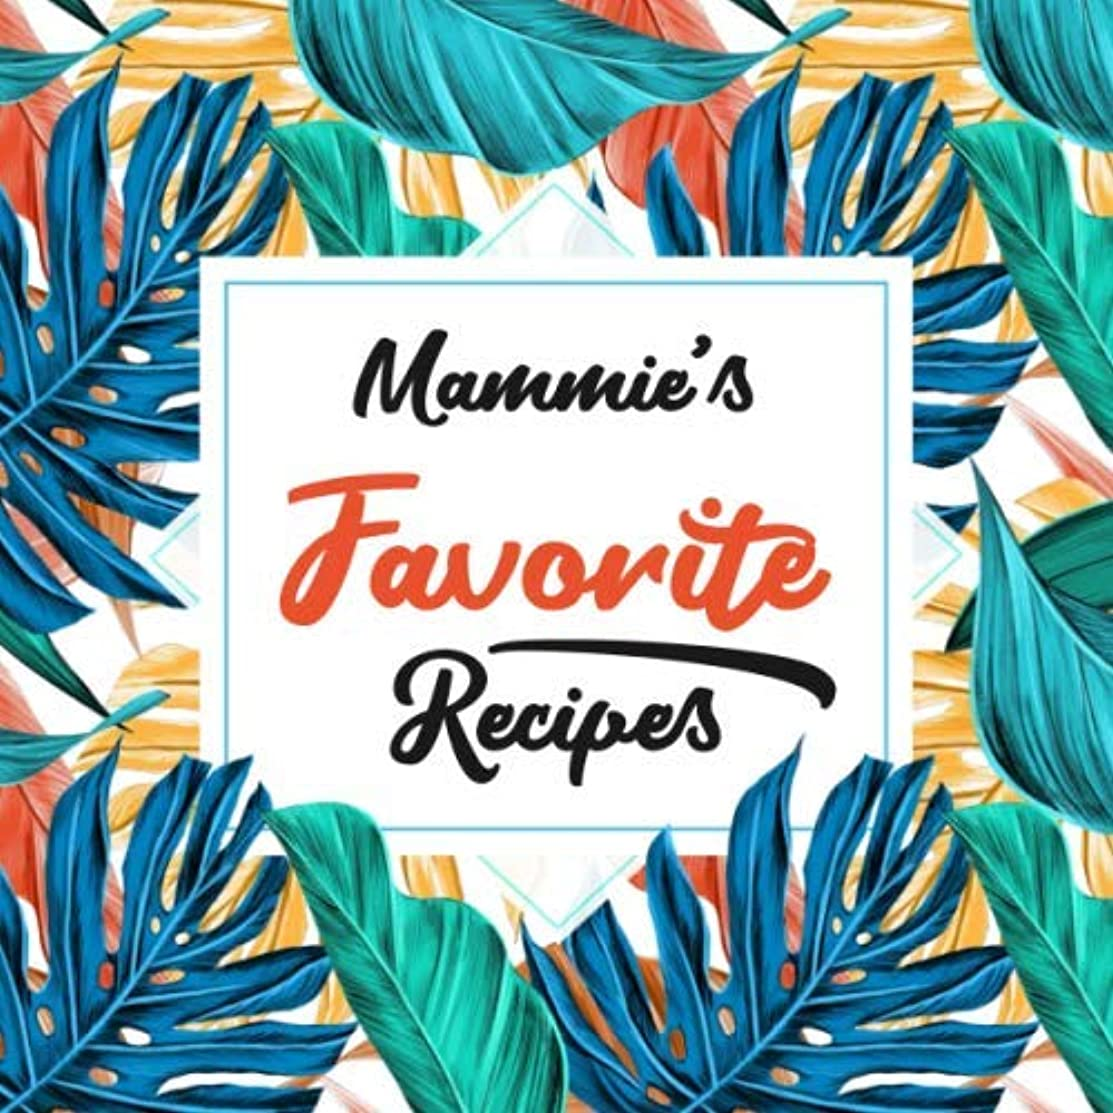 Mammie's Favorite Recipes: Blank Cookbook - Make Her Smile With This Cute Personalized Empty Recipe Book With 120 Recipe Pages - Mammie Gift for ... Christmas, or Other Holidays  - Floral Cover